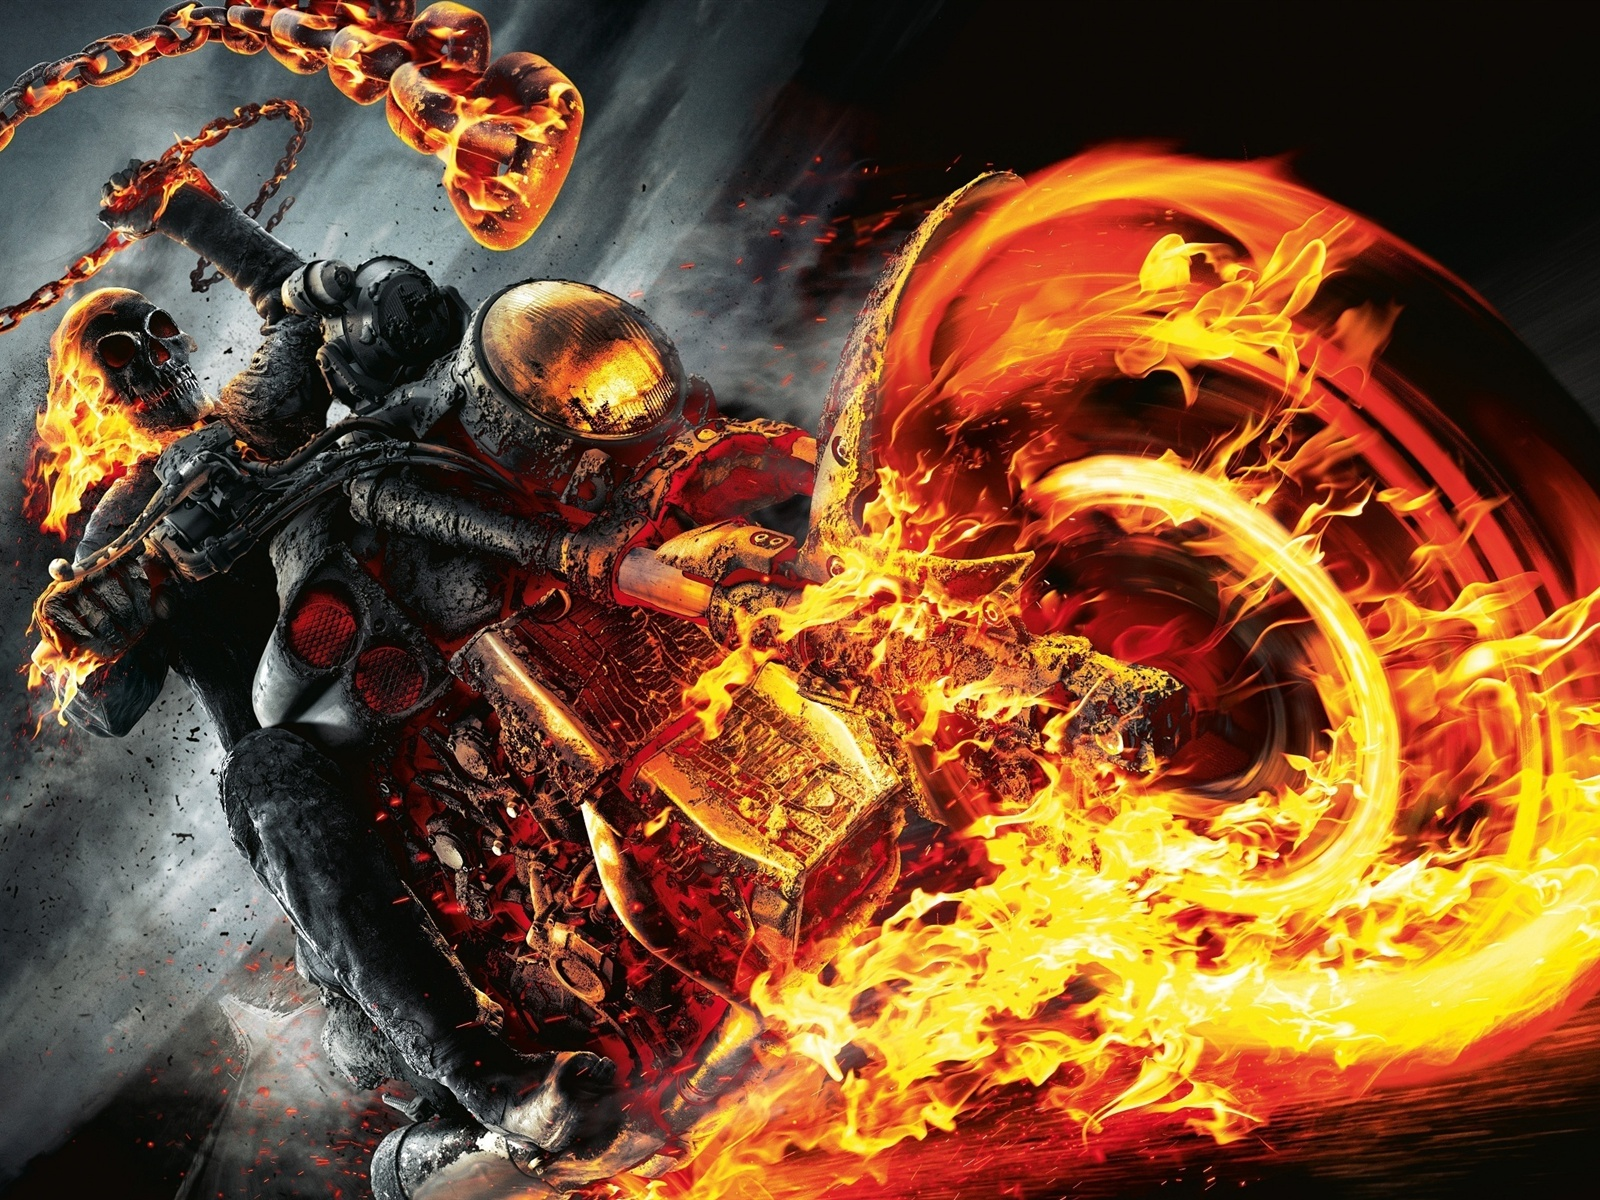 Ghost Rider wallpaper - 1600x1200